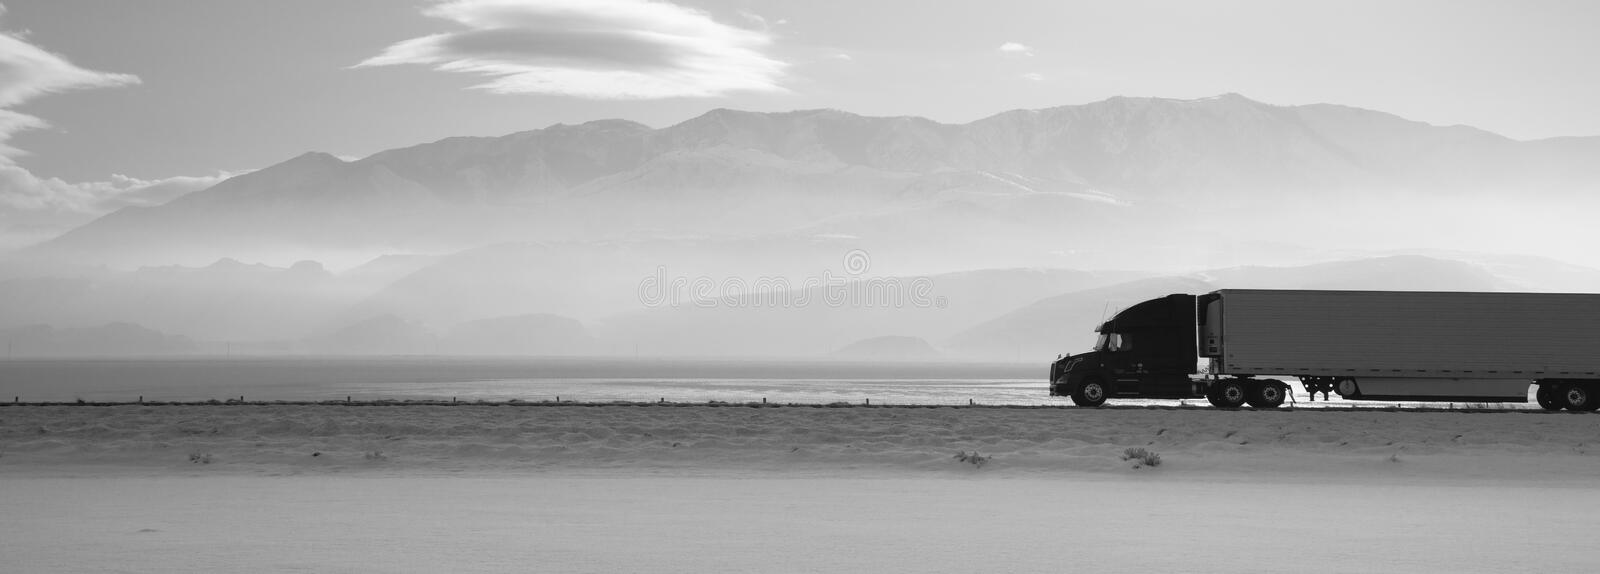 Semi Truck Travels Highway Over Salt Flats Freight Transport. Fresh snow covers the ground trucks pass late in the day on this lonely highway stock images